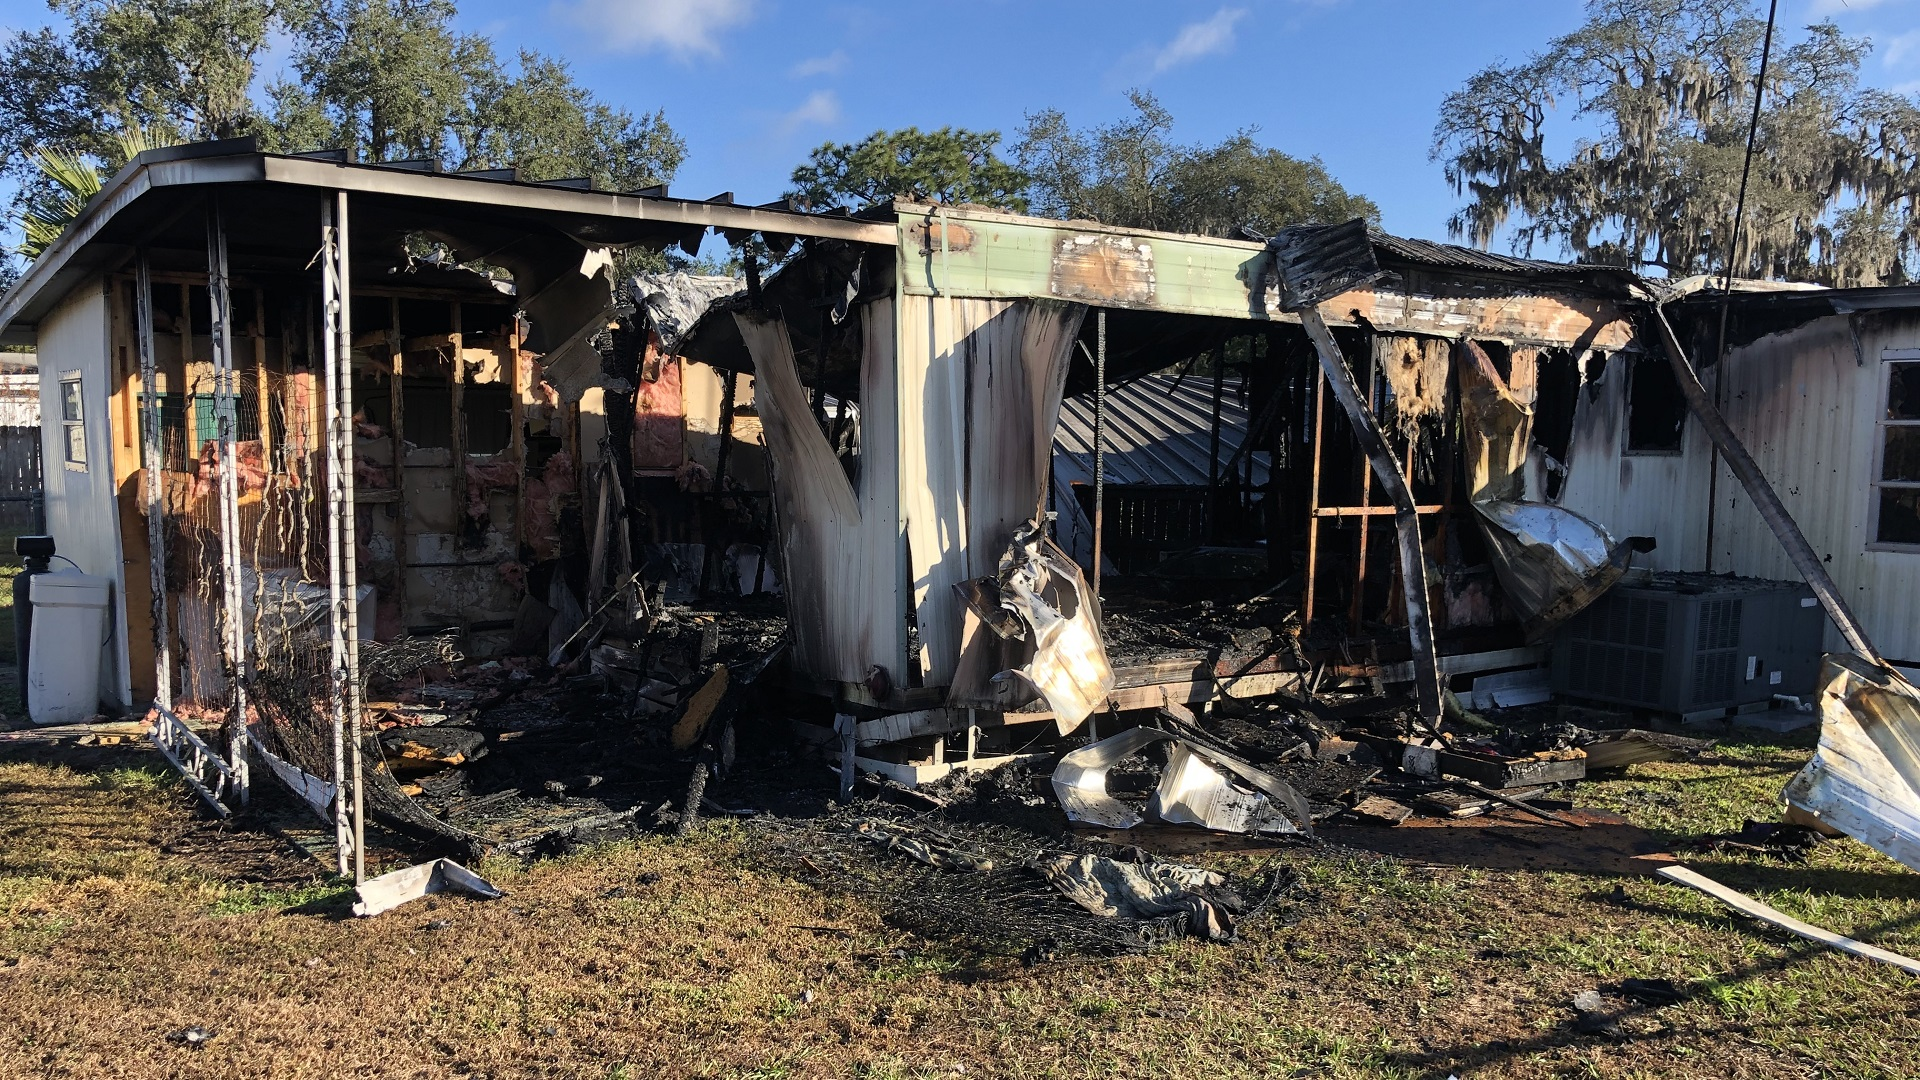 Space heater sparked fire that destroyed Zephyrhills mobile